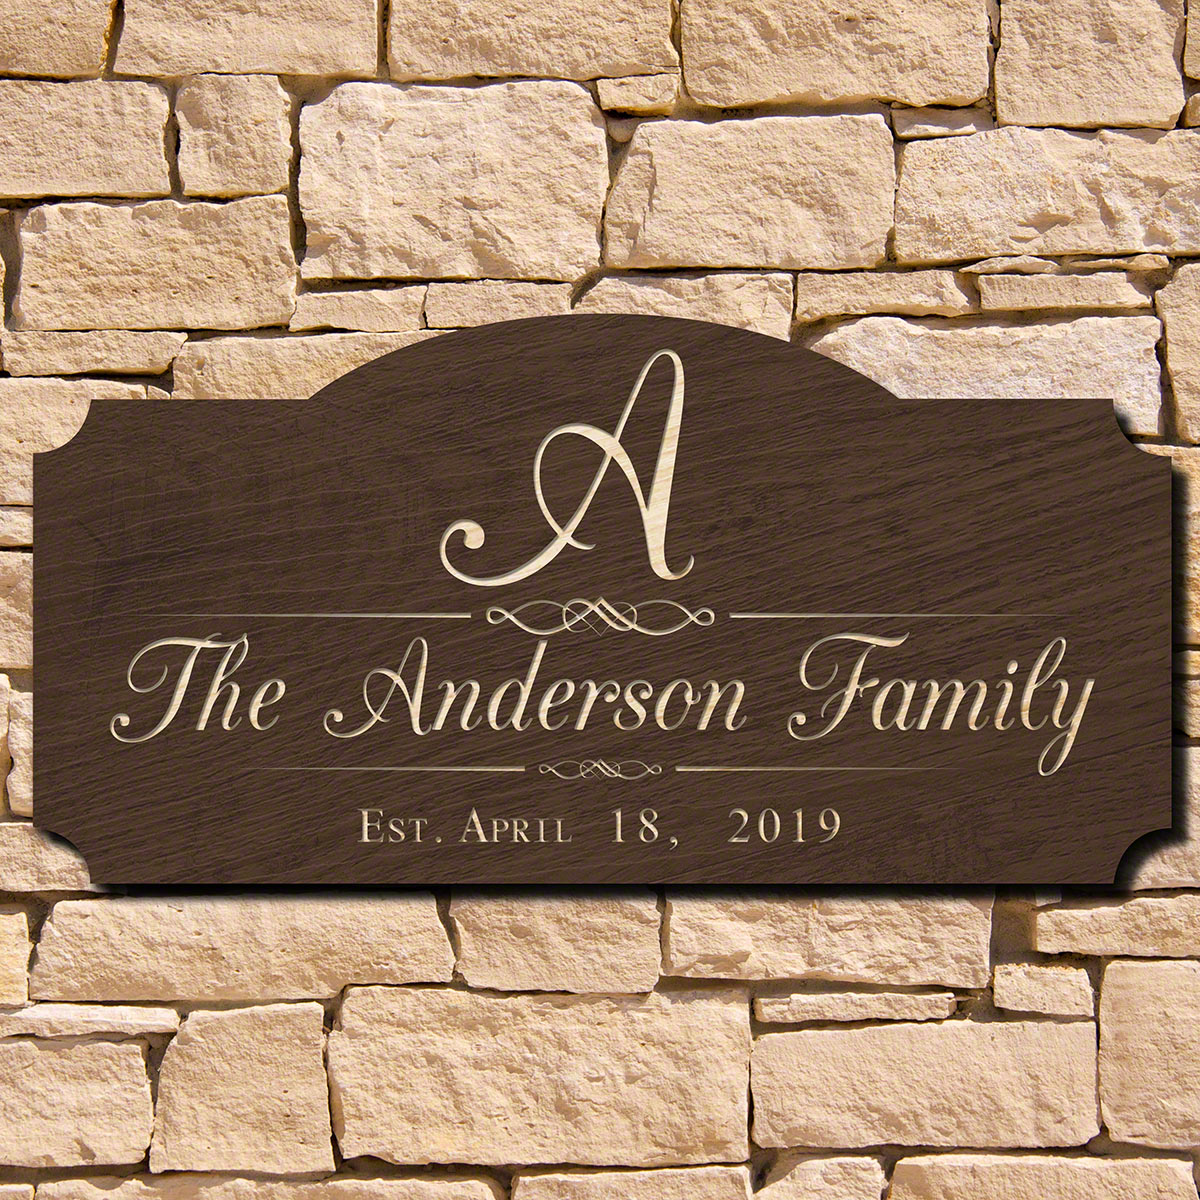 Mulheren-Personalized-Family-Name-Sign-(Signature-Series)